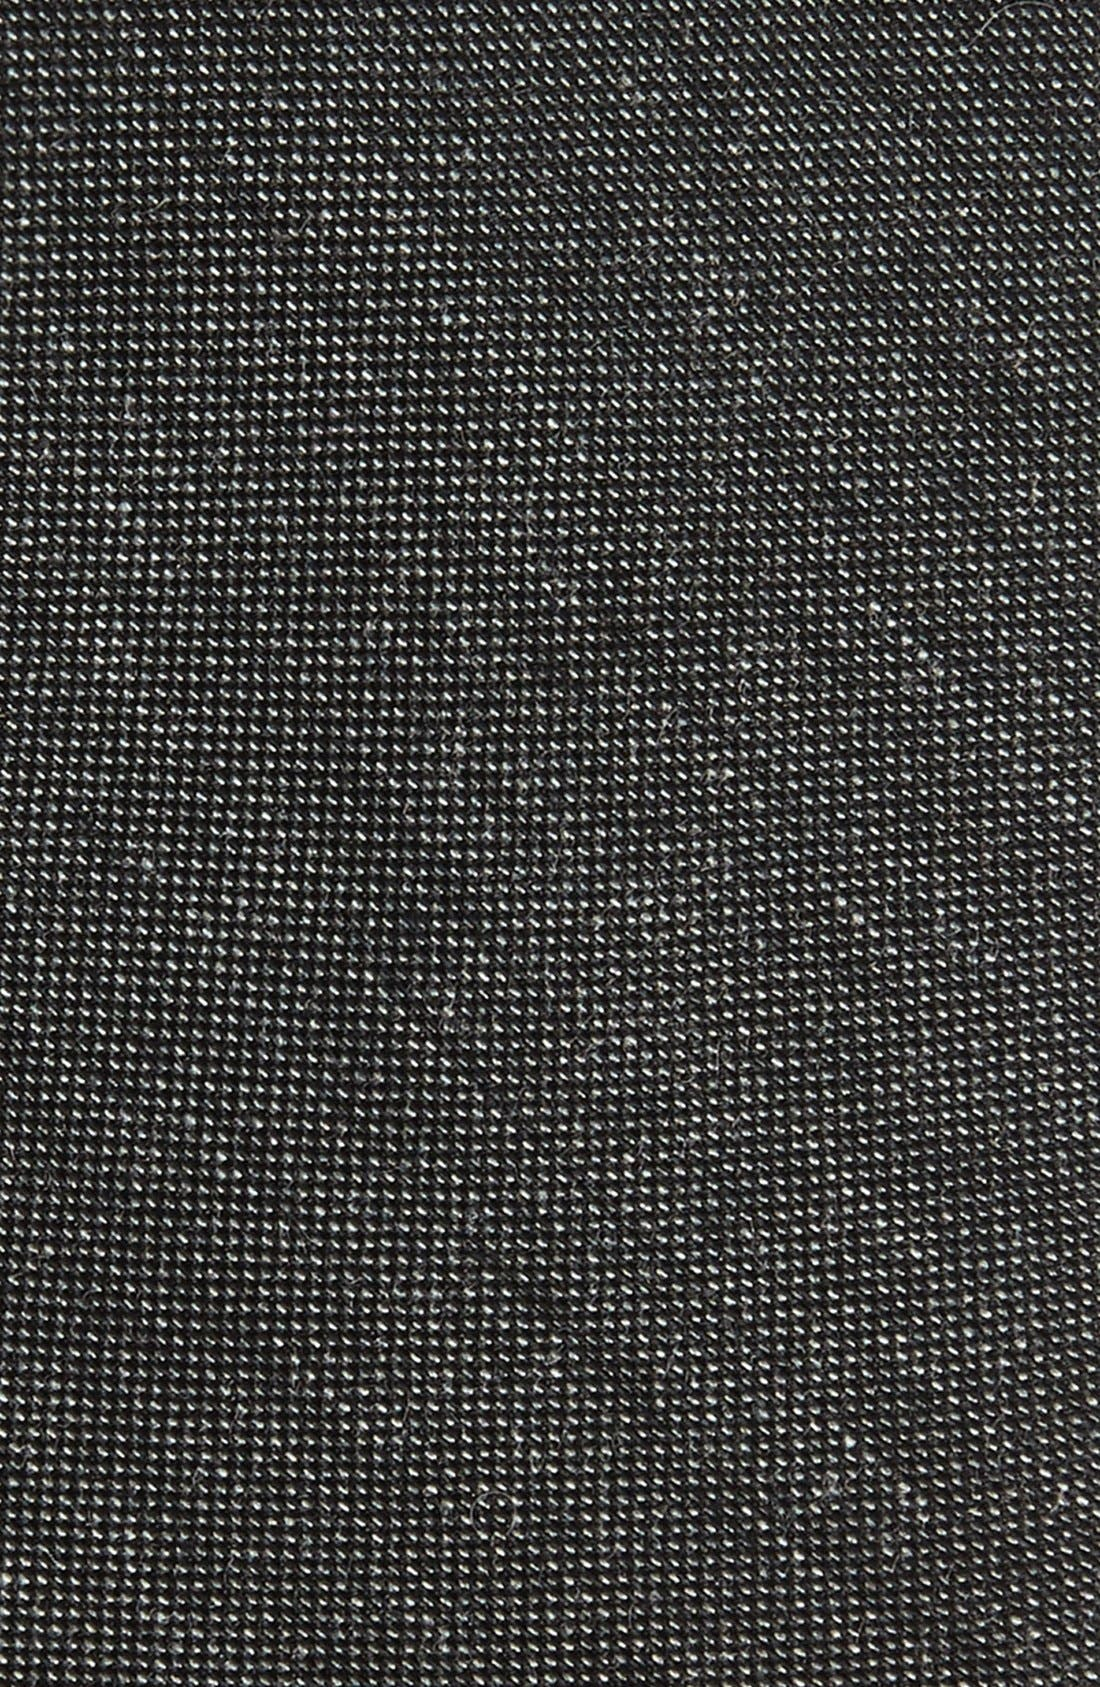 Alternate Image 2  - Calibrate Mélange Woven Skinny Tie